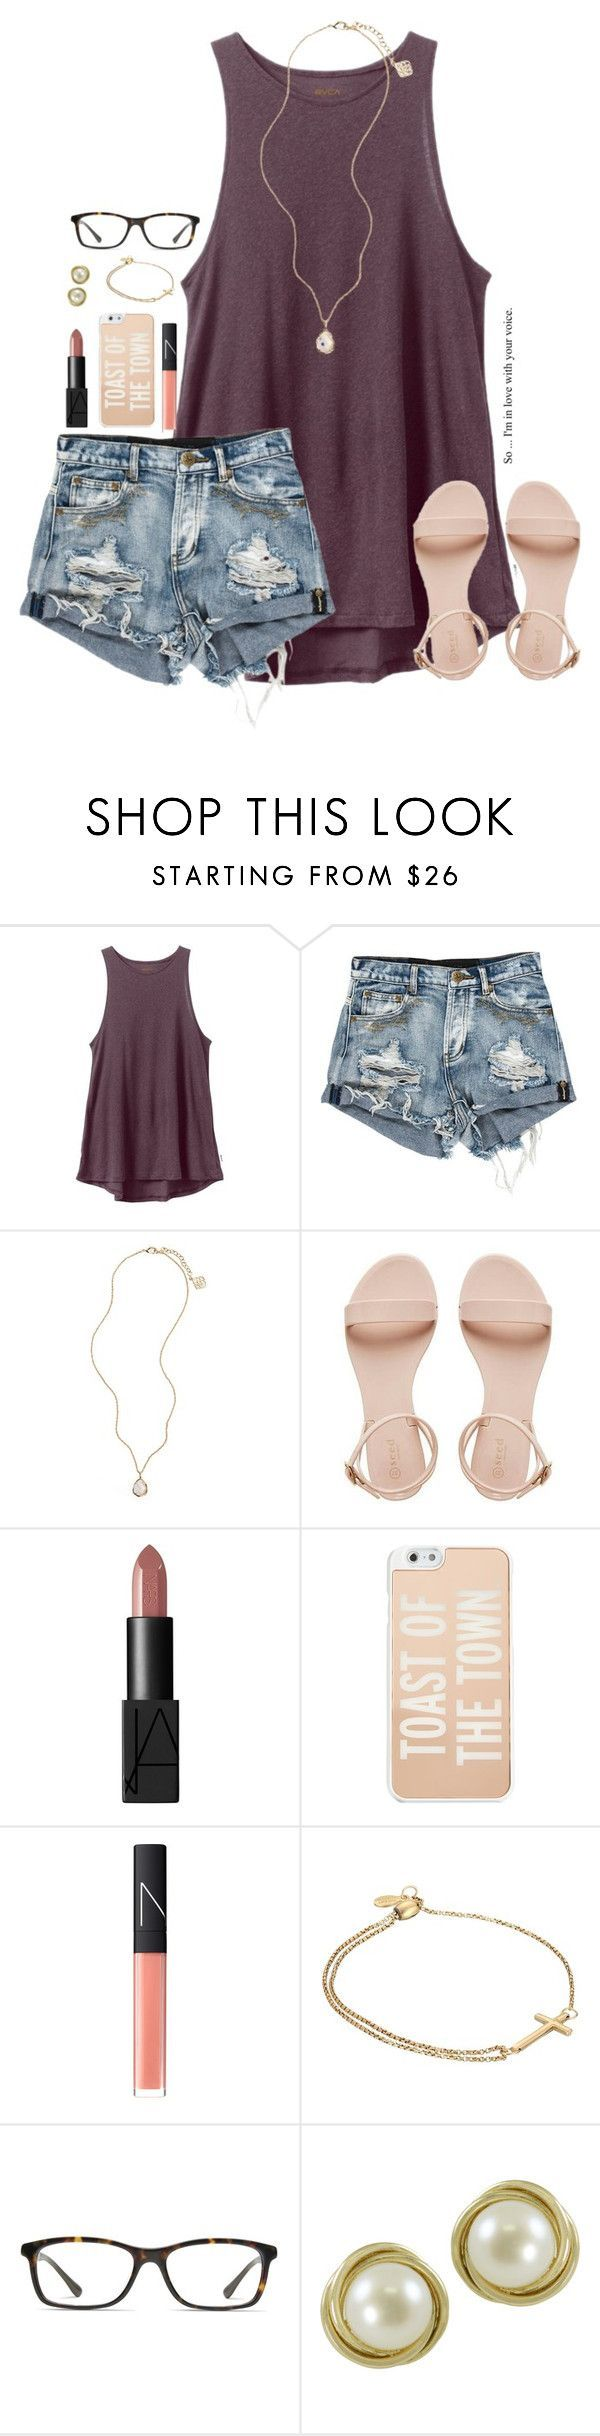 """""""everyone you meet in life, you meet for a reason"""" by kaley-ii ❤ liked on Polyvore featuring RVCA, Kendra Scott, NARS Cosmetics, Kate Spade, Alex and Ani, GlassesUSA, Imperial, women's clothing, women's fashion and women #womenclothingforsummer"""